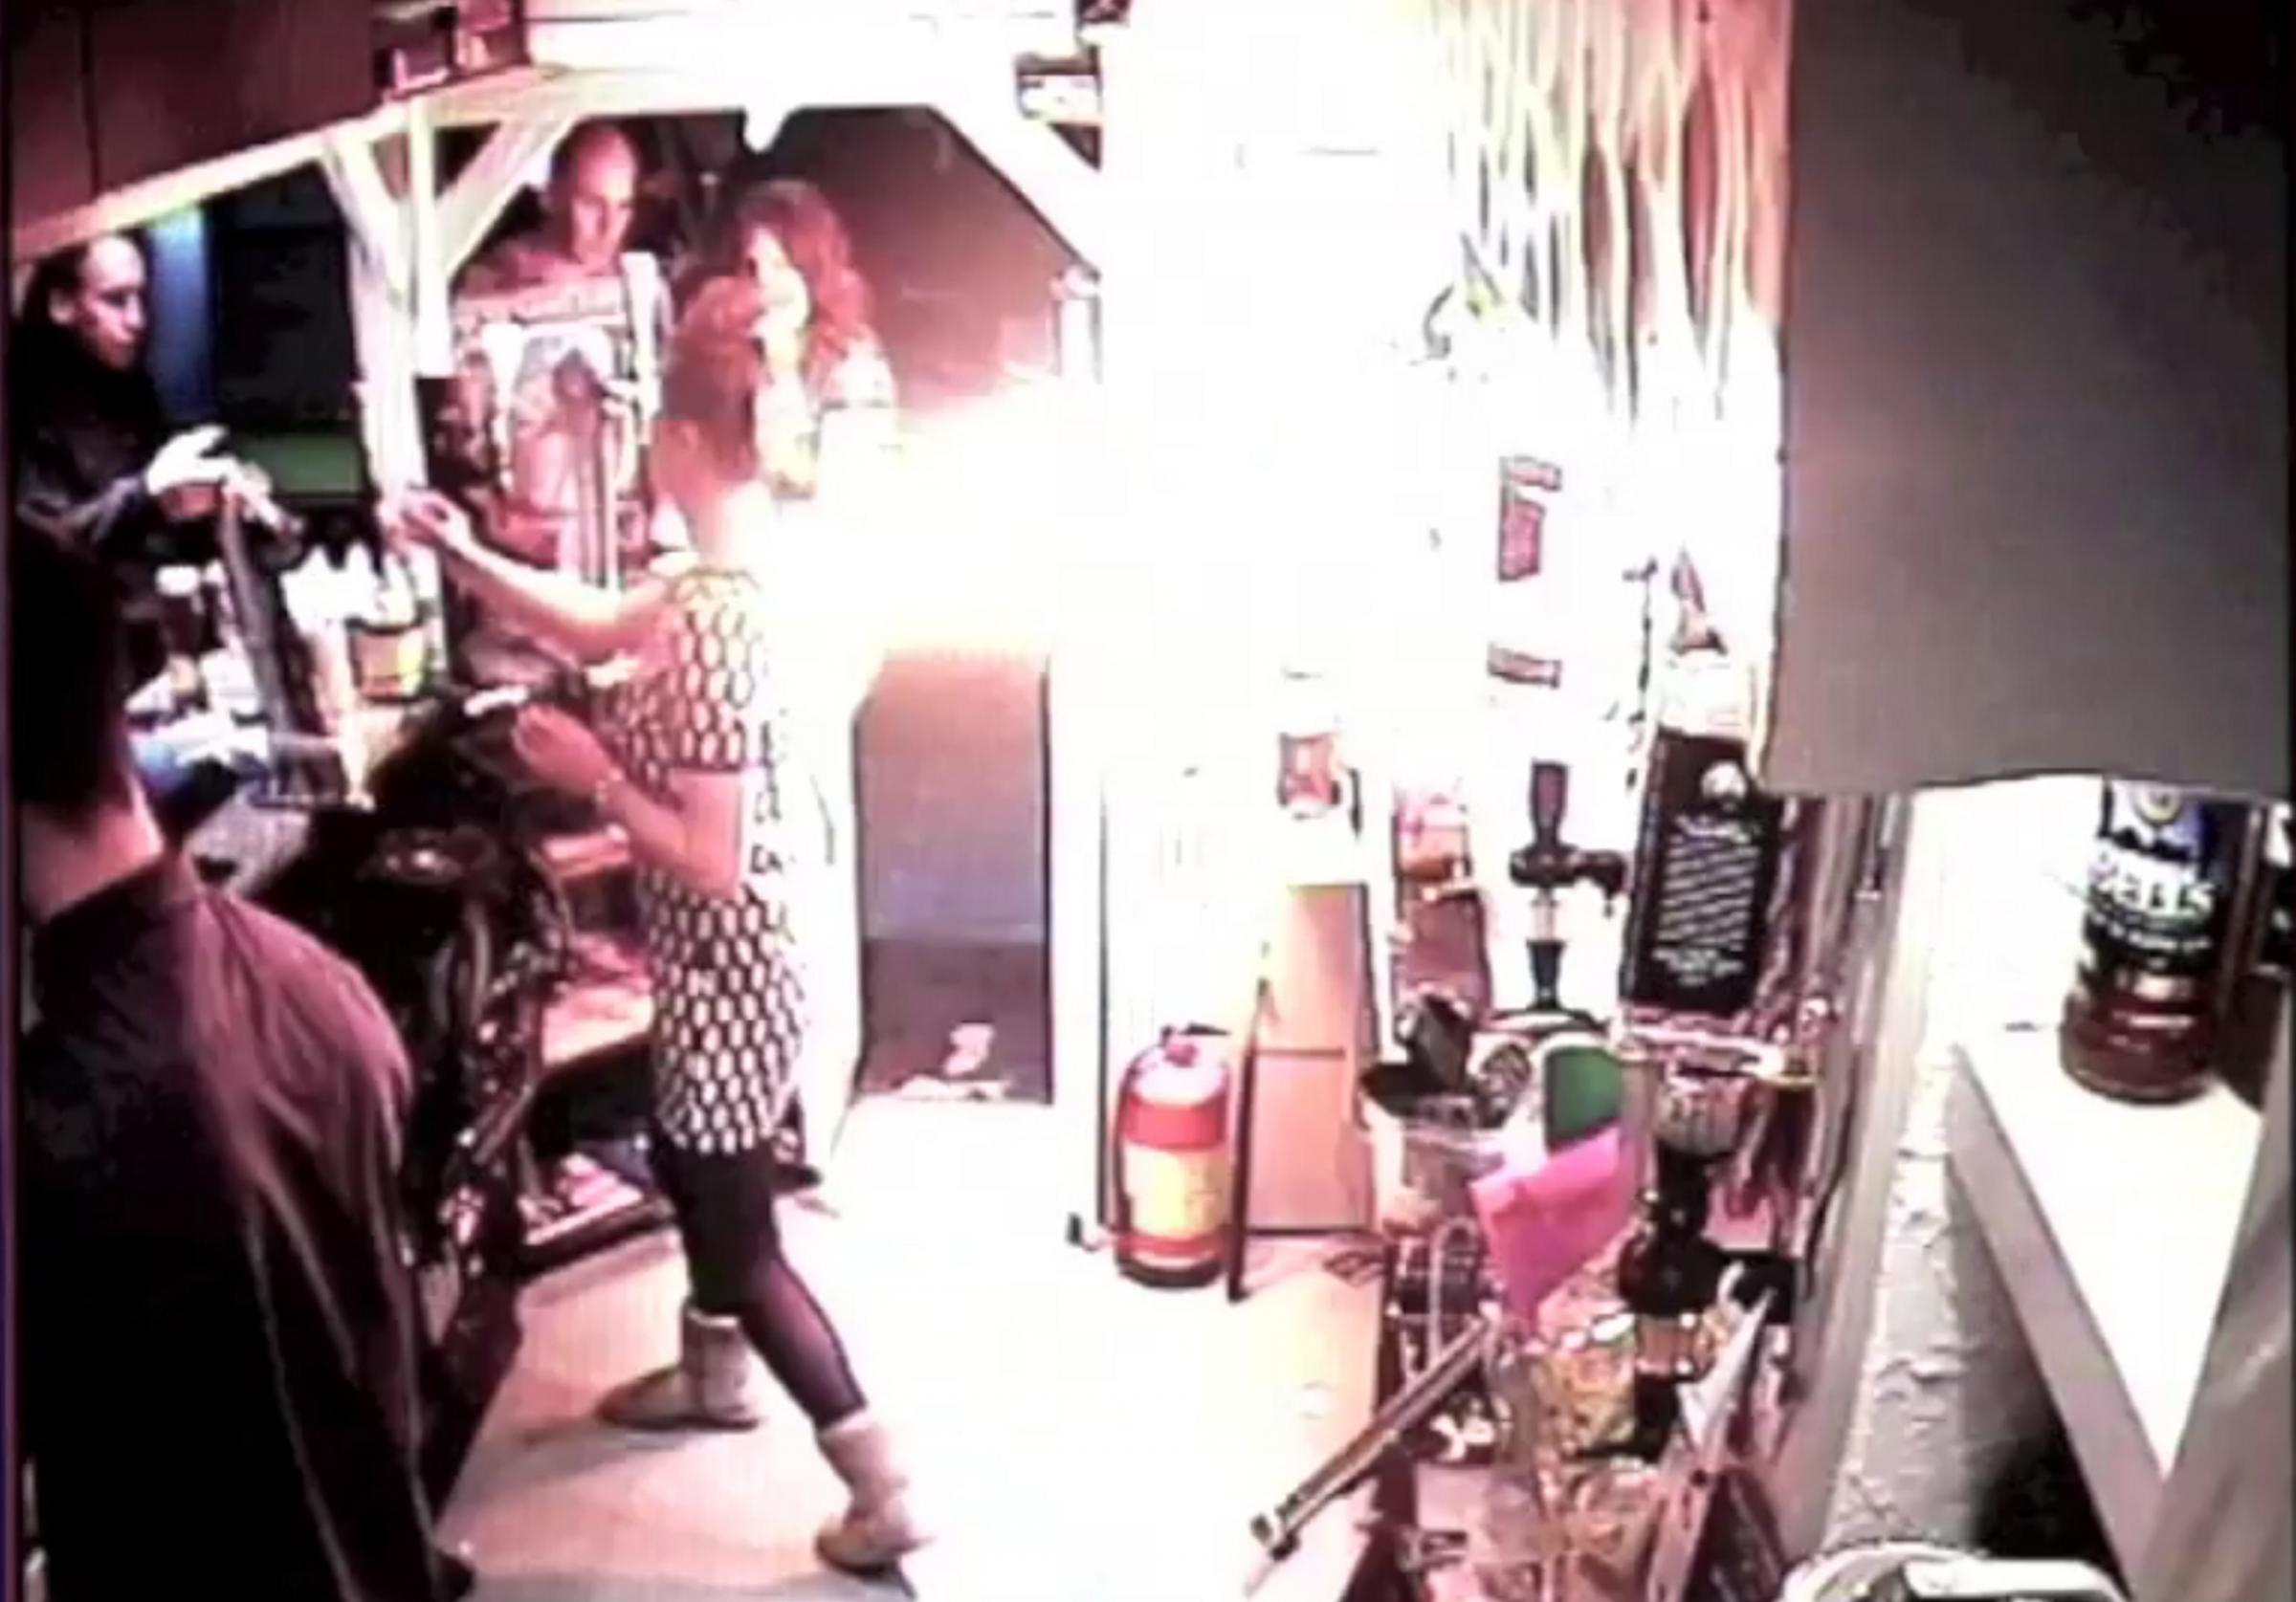 VIDEO: E-cigarette explodes in packed Richmond pub and sets barmaid on fire